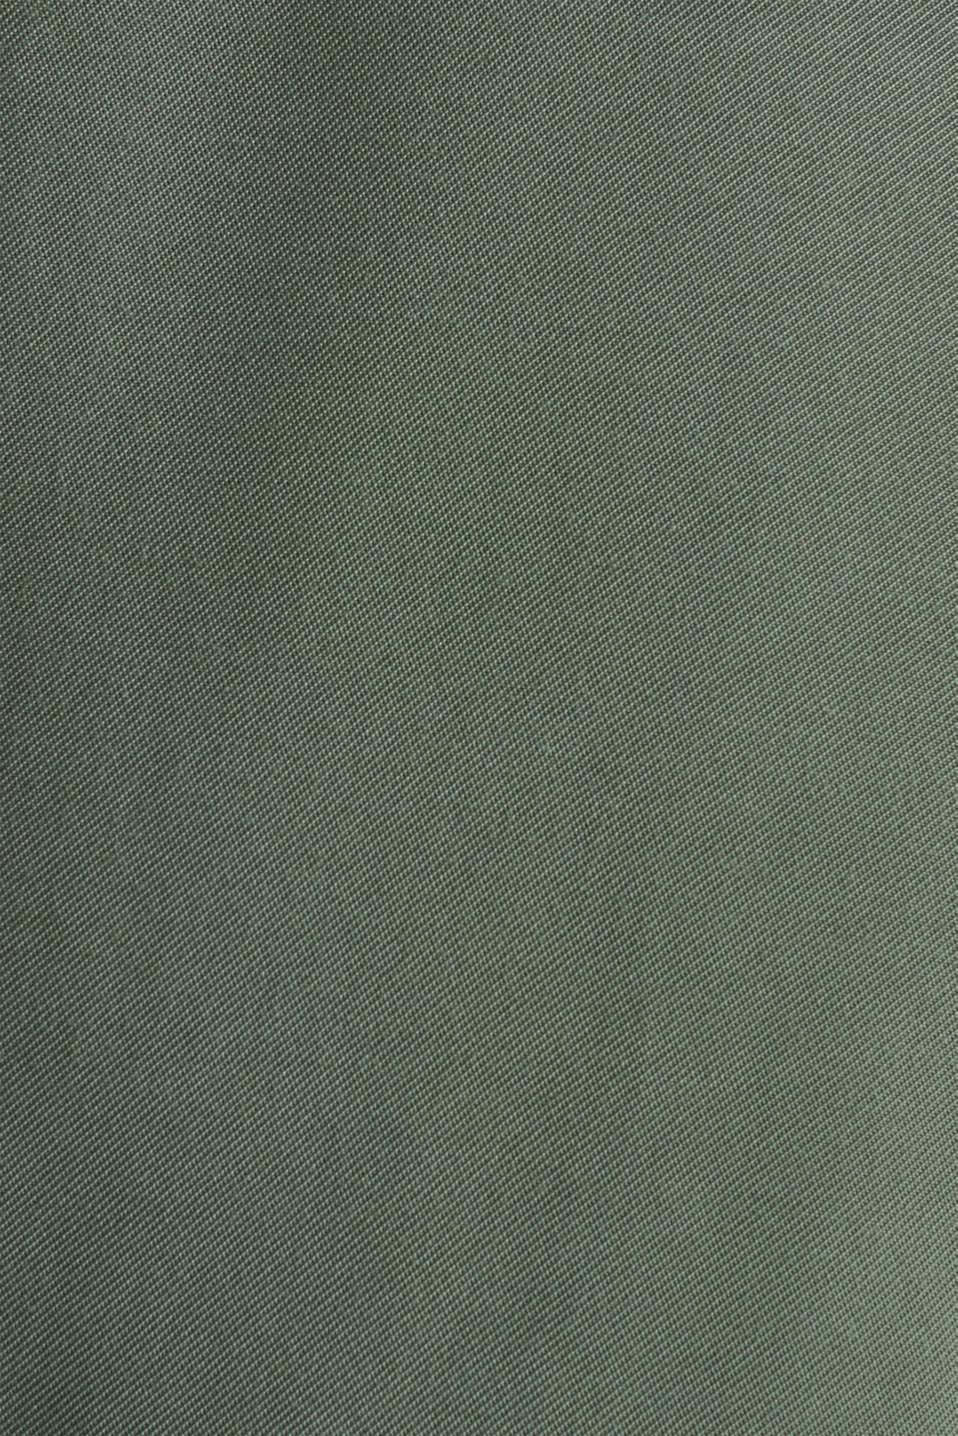 Skirt shorts in a utility look, KHAKI GREEN, detail image number 3